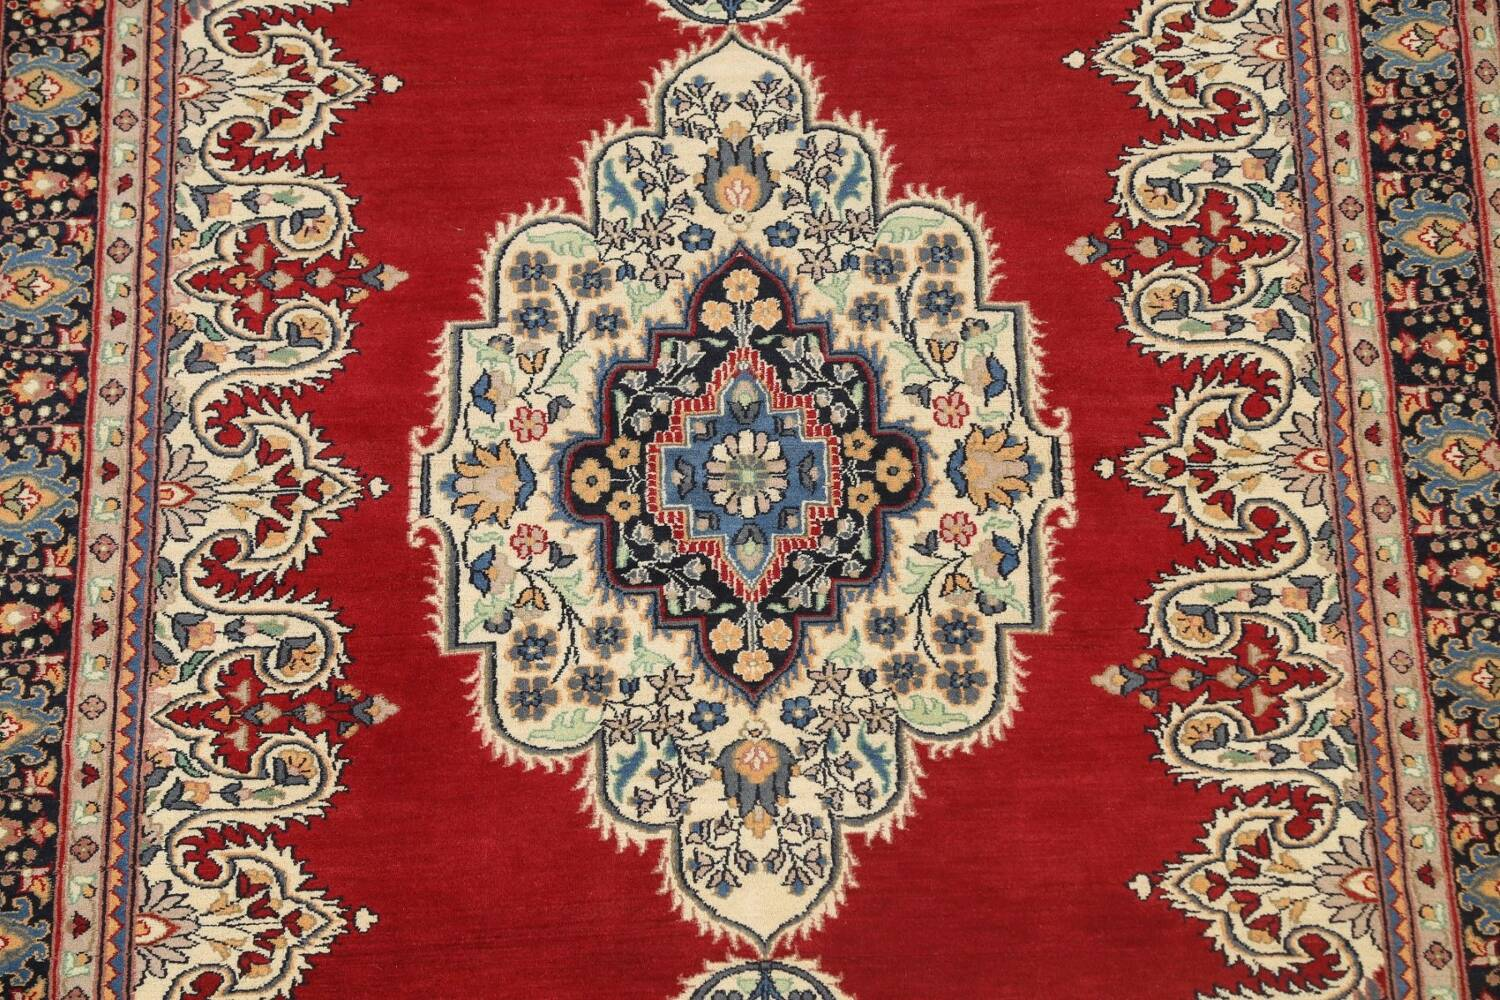 100% Vegetable Dye Red Tabriz Oriental Area Rug 5x7 image 4